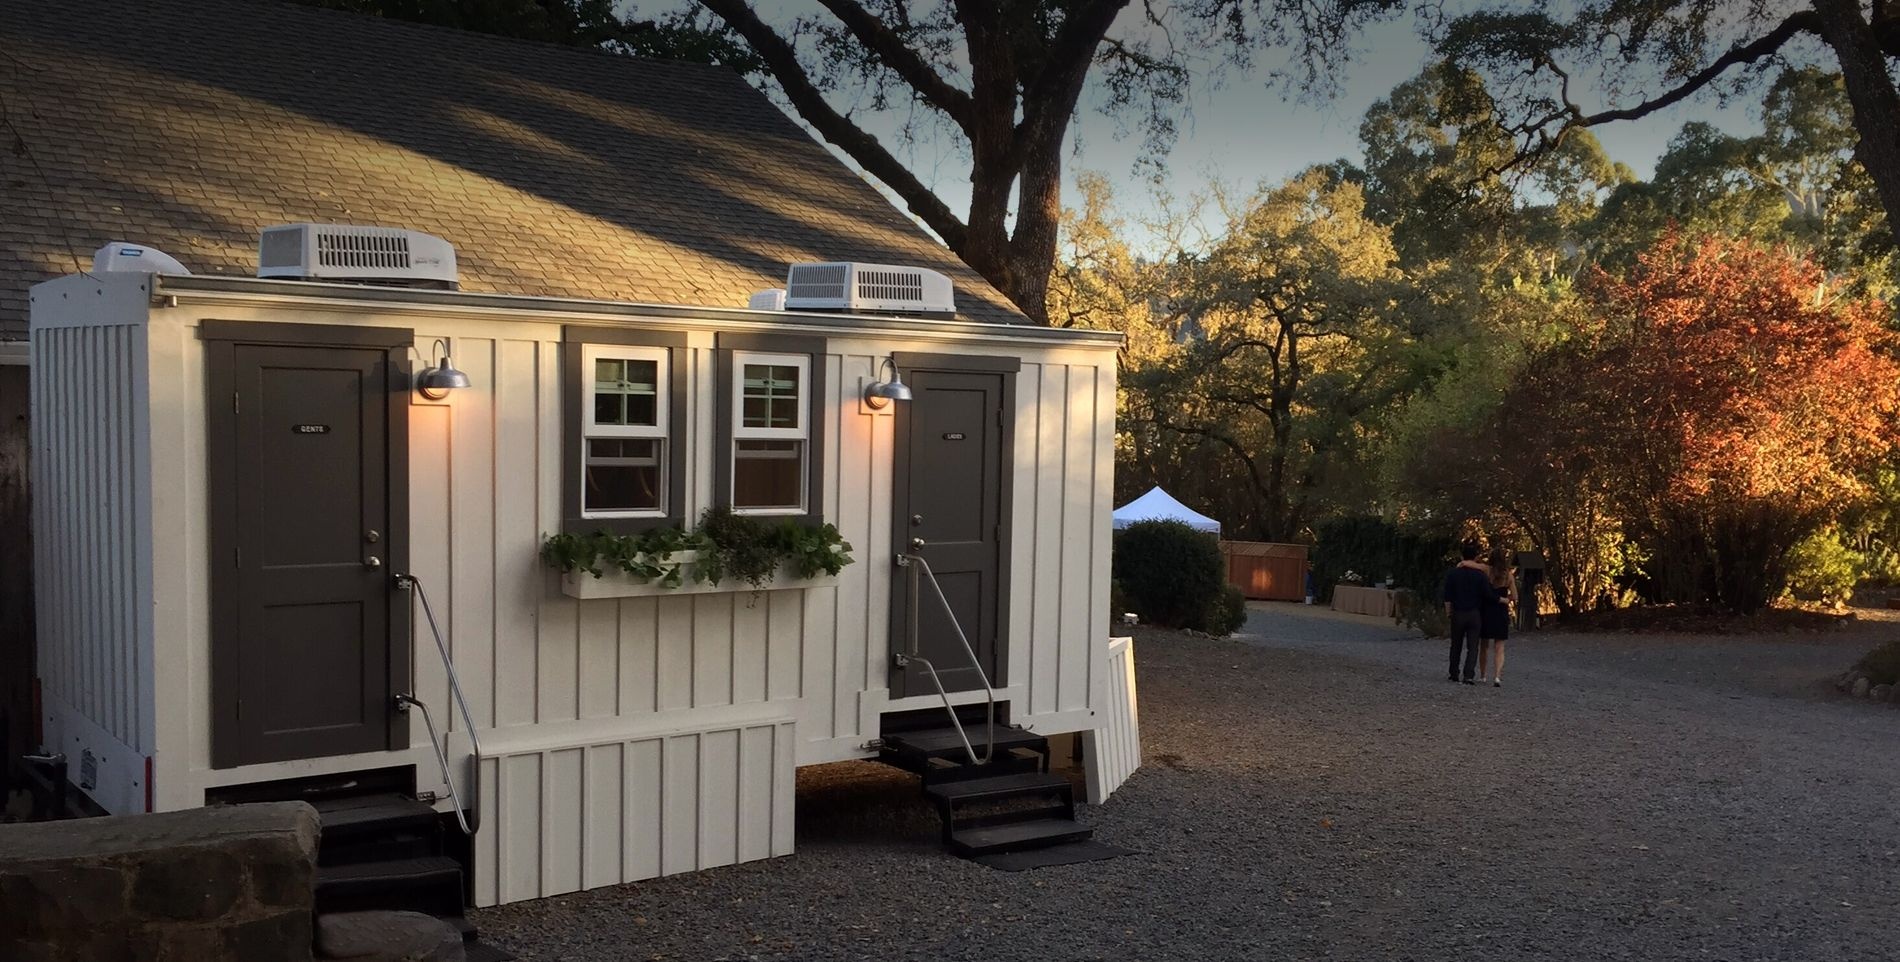 The Water Cottage Portable Restrooms With Design In Mind We